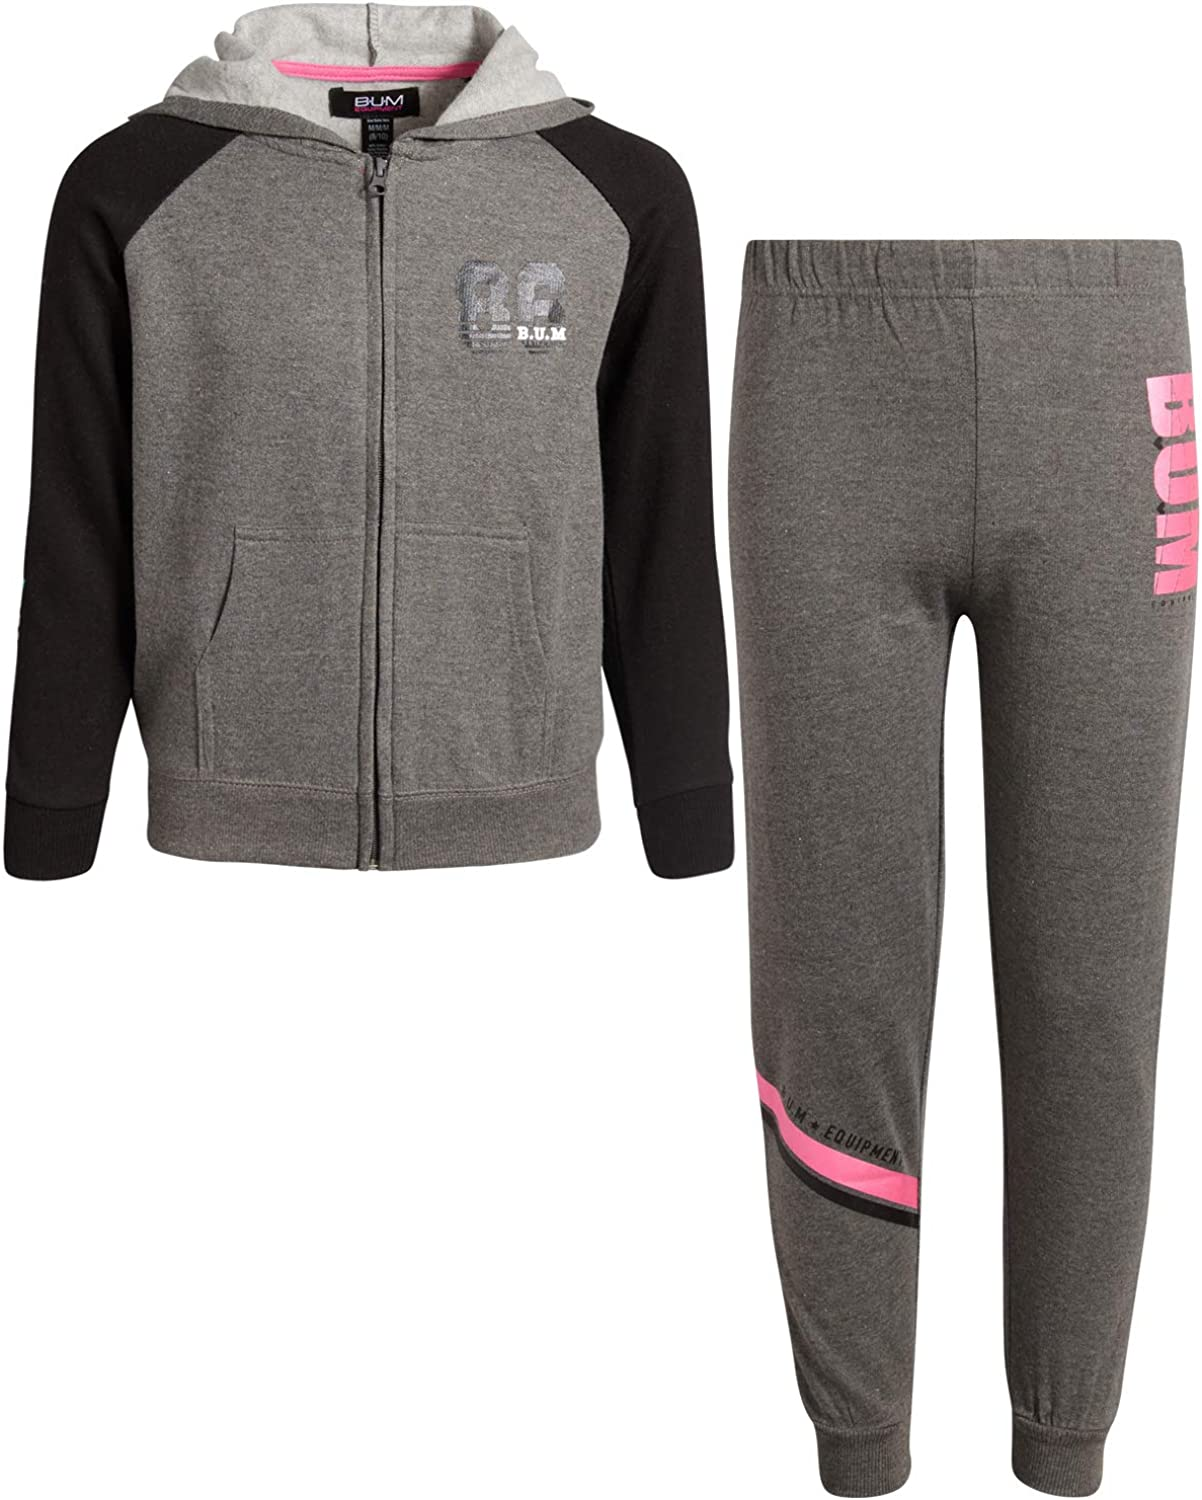 Equipment Girls 2-Piece Athletic Jogger Pant Set with Zip Up Hoodie B.U.M Active  Top & Bottom Sets